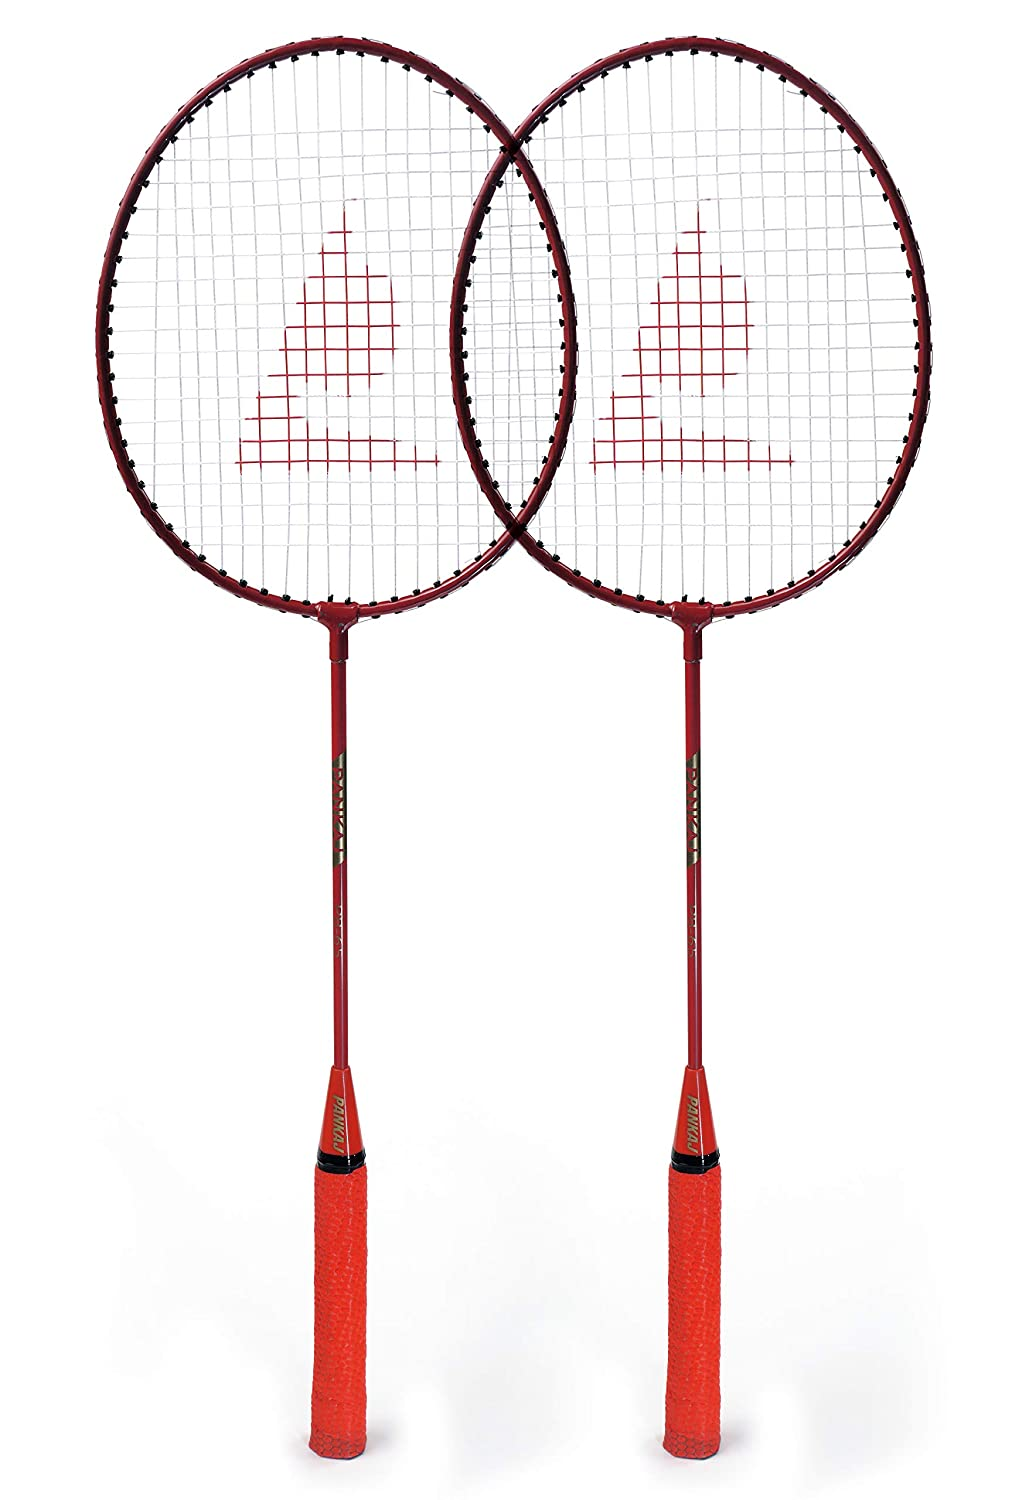 Badminton Racket - PB 65 - Pack for 2 (Red)